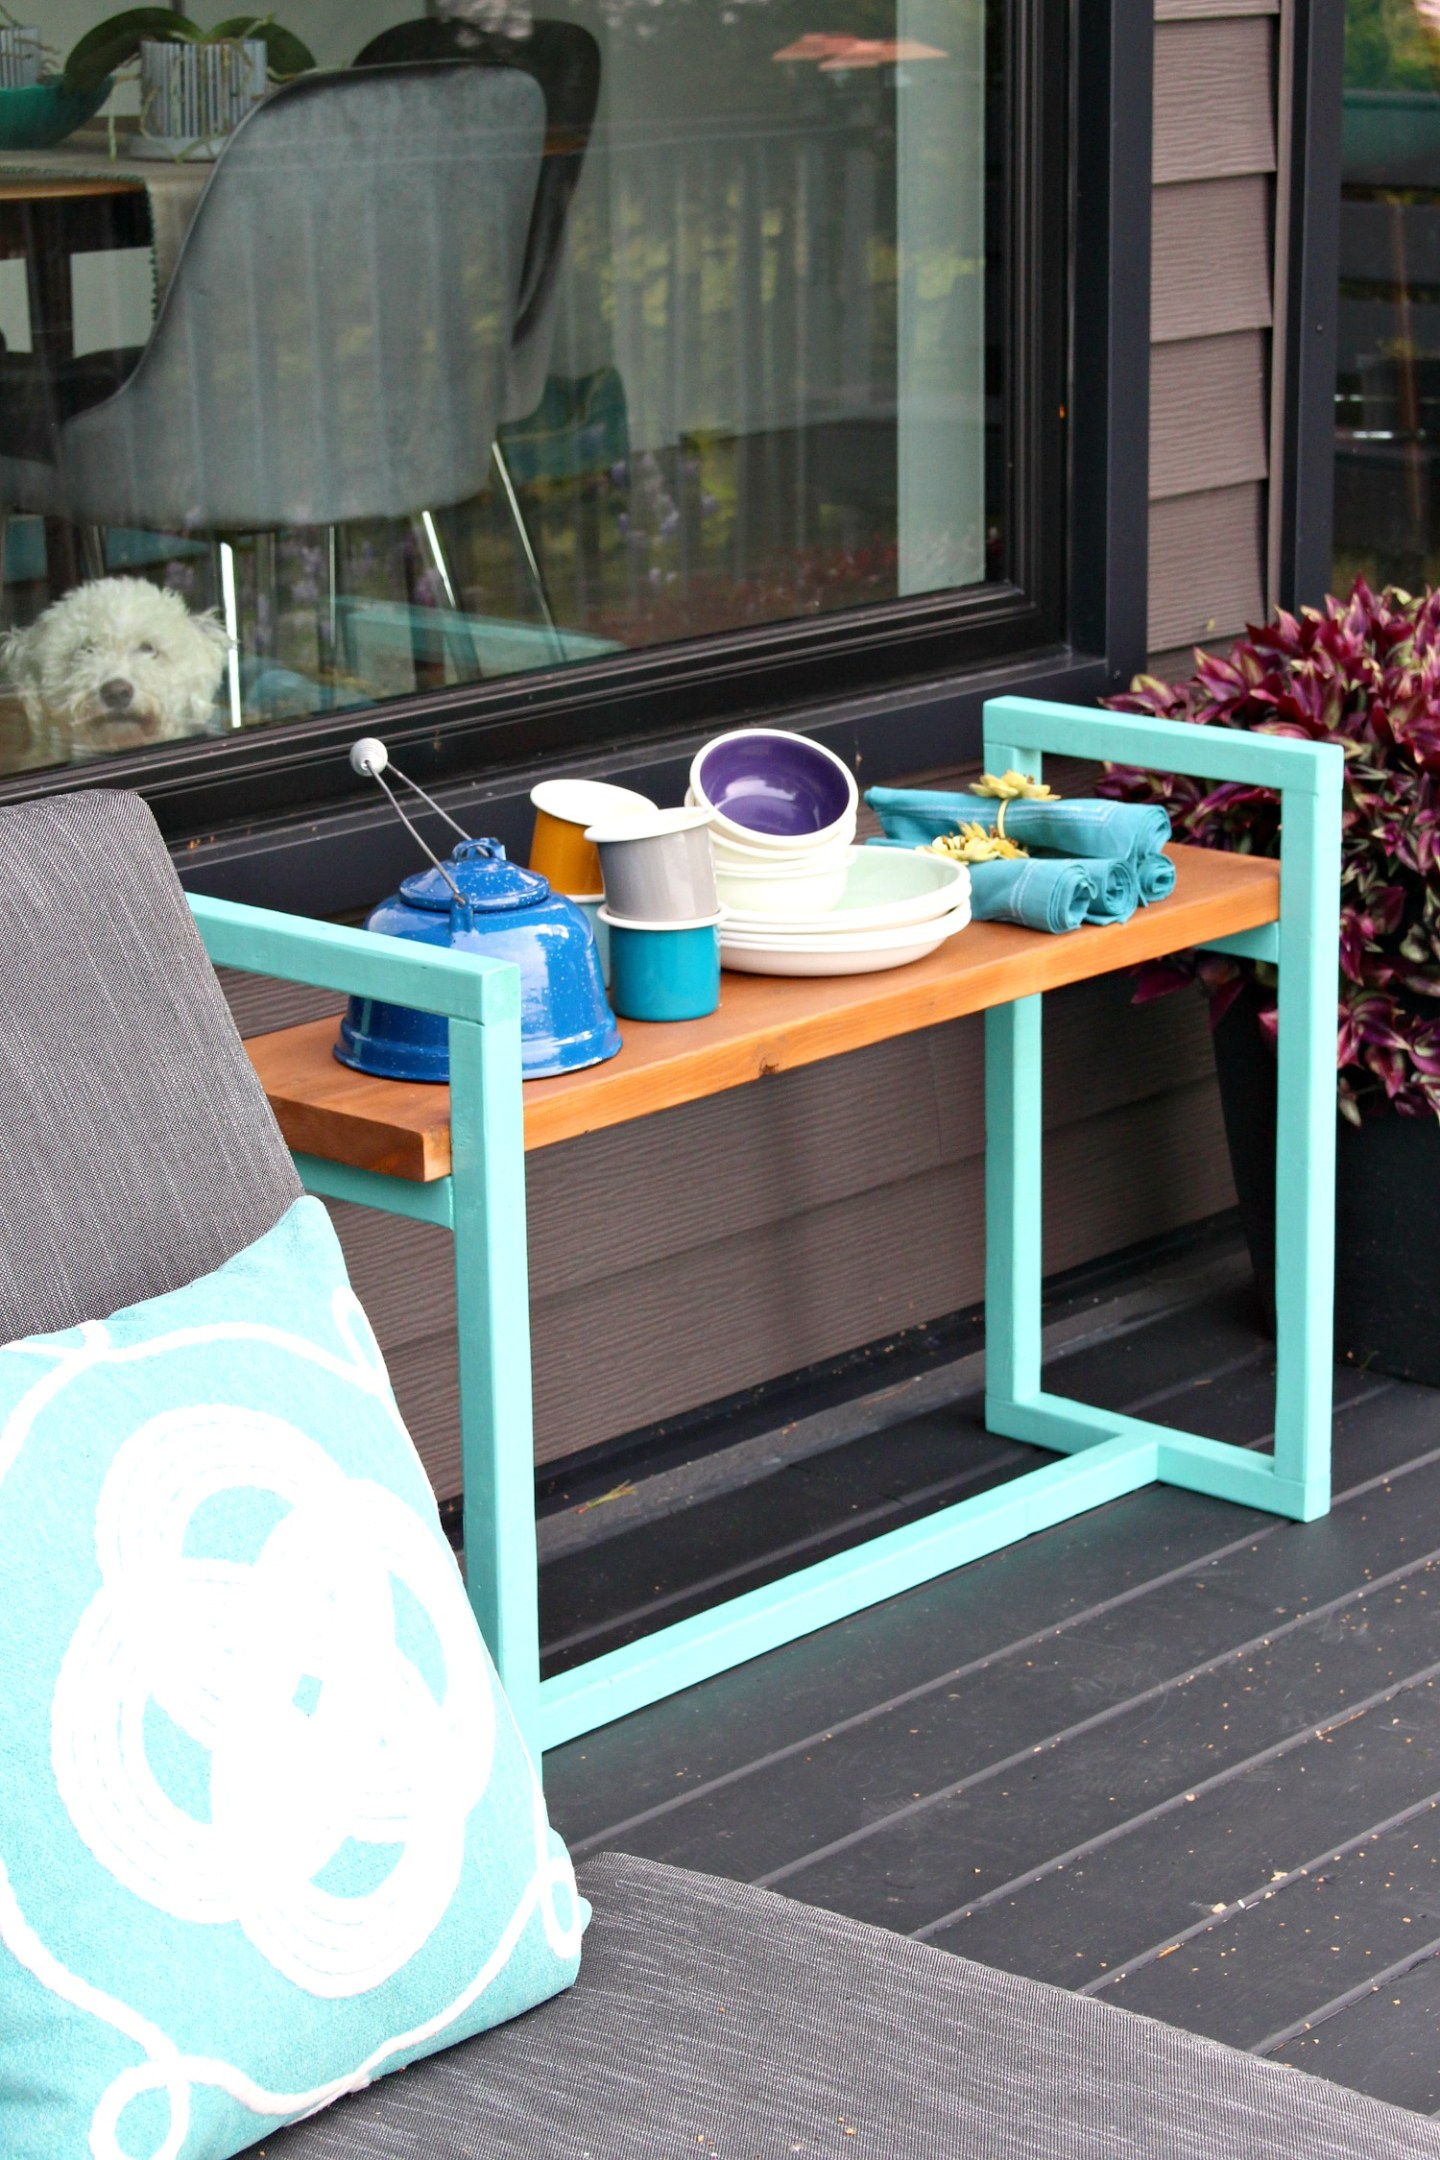 Beginner DIY Wood Bench Project for Outdoors   Easy DIY Bench with Minimal Tools (Sponsored by The Home Depot Canada)